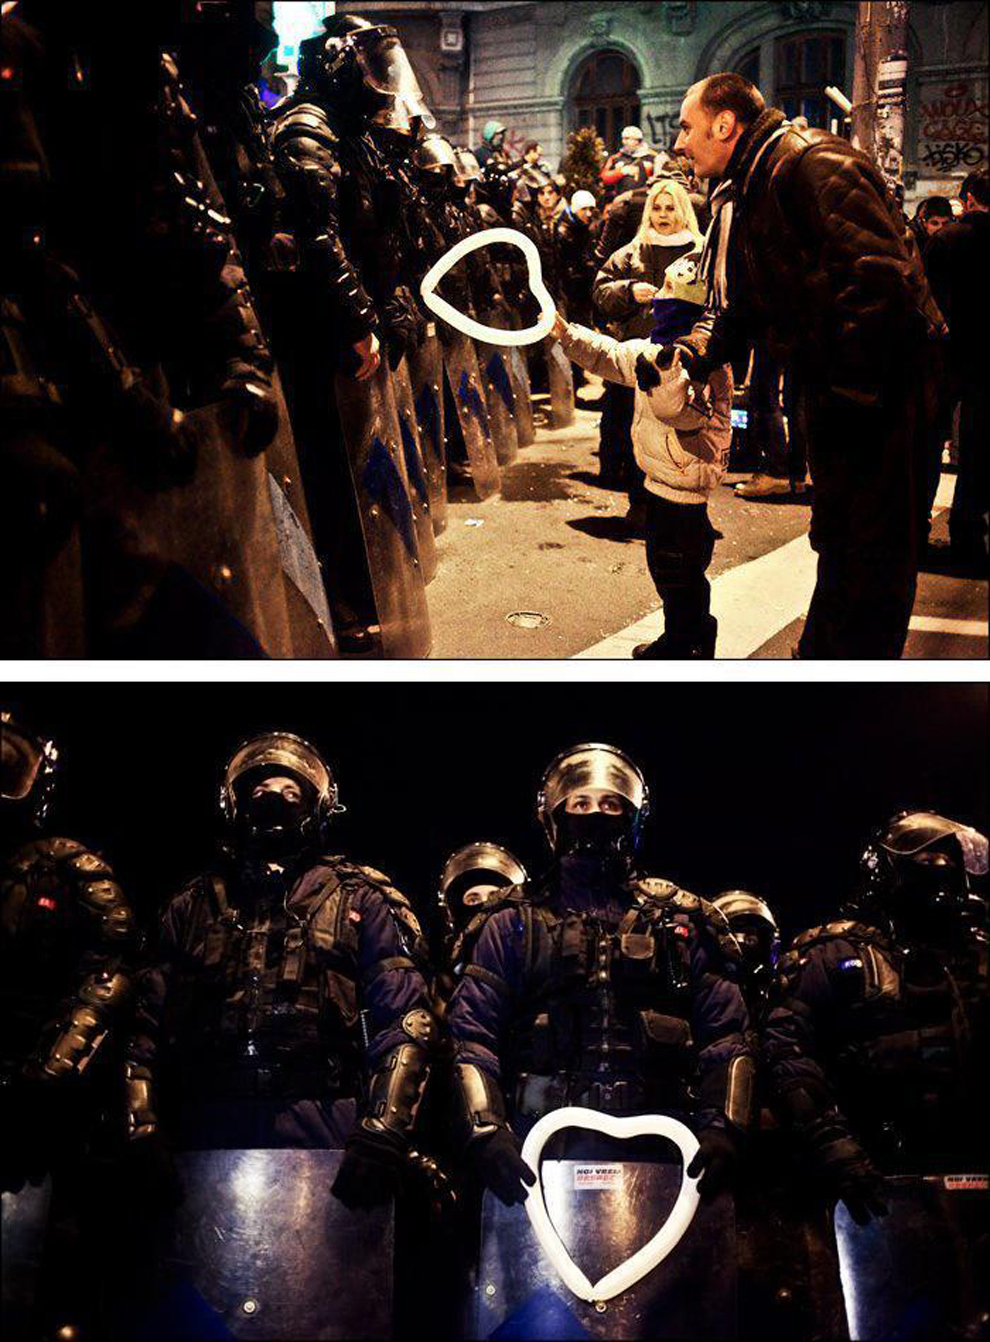 a-romanian-child-hands-a-heart-shaped-balloon-to-riot-police-during-protests-against-austerity-measures-in-bucharest (1)